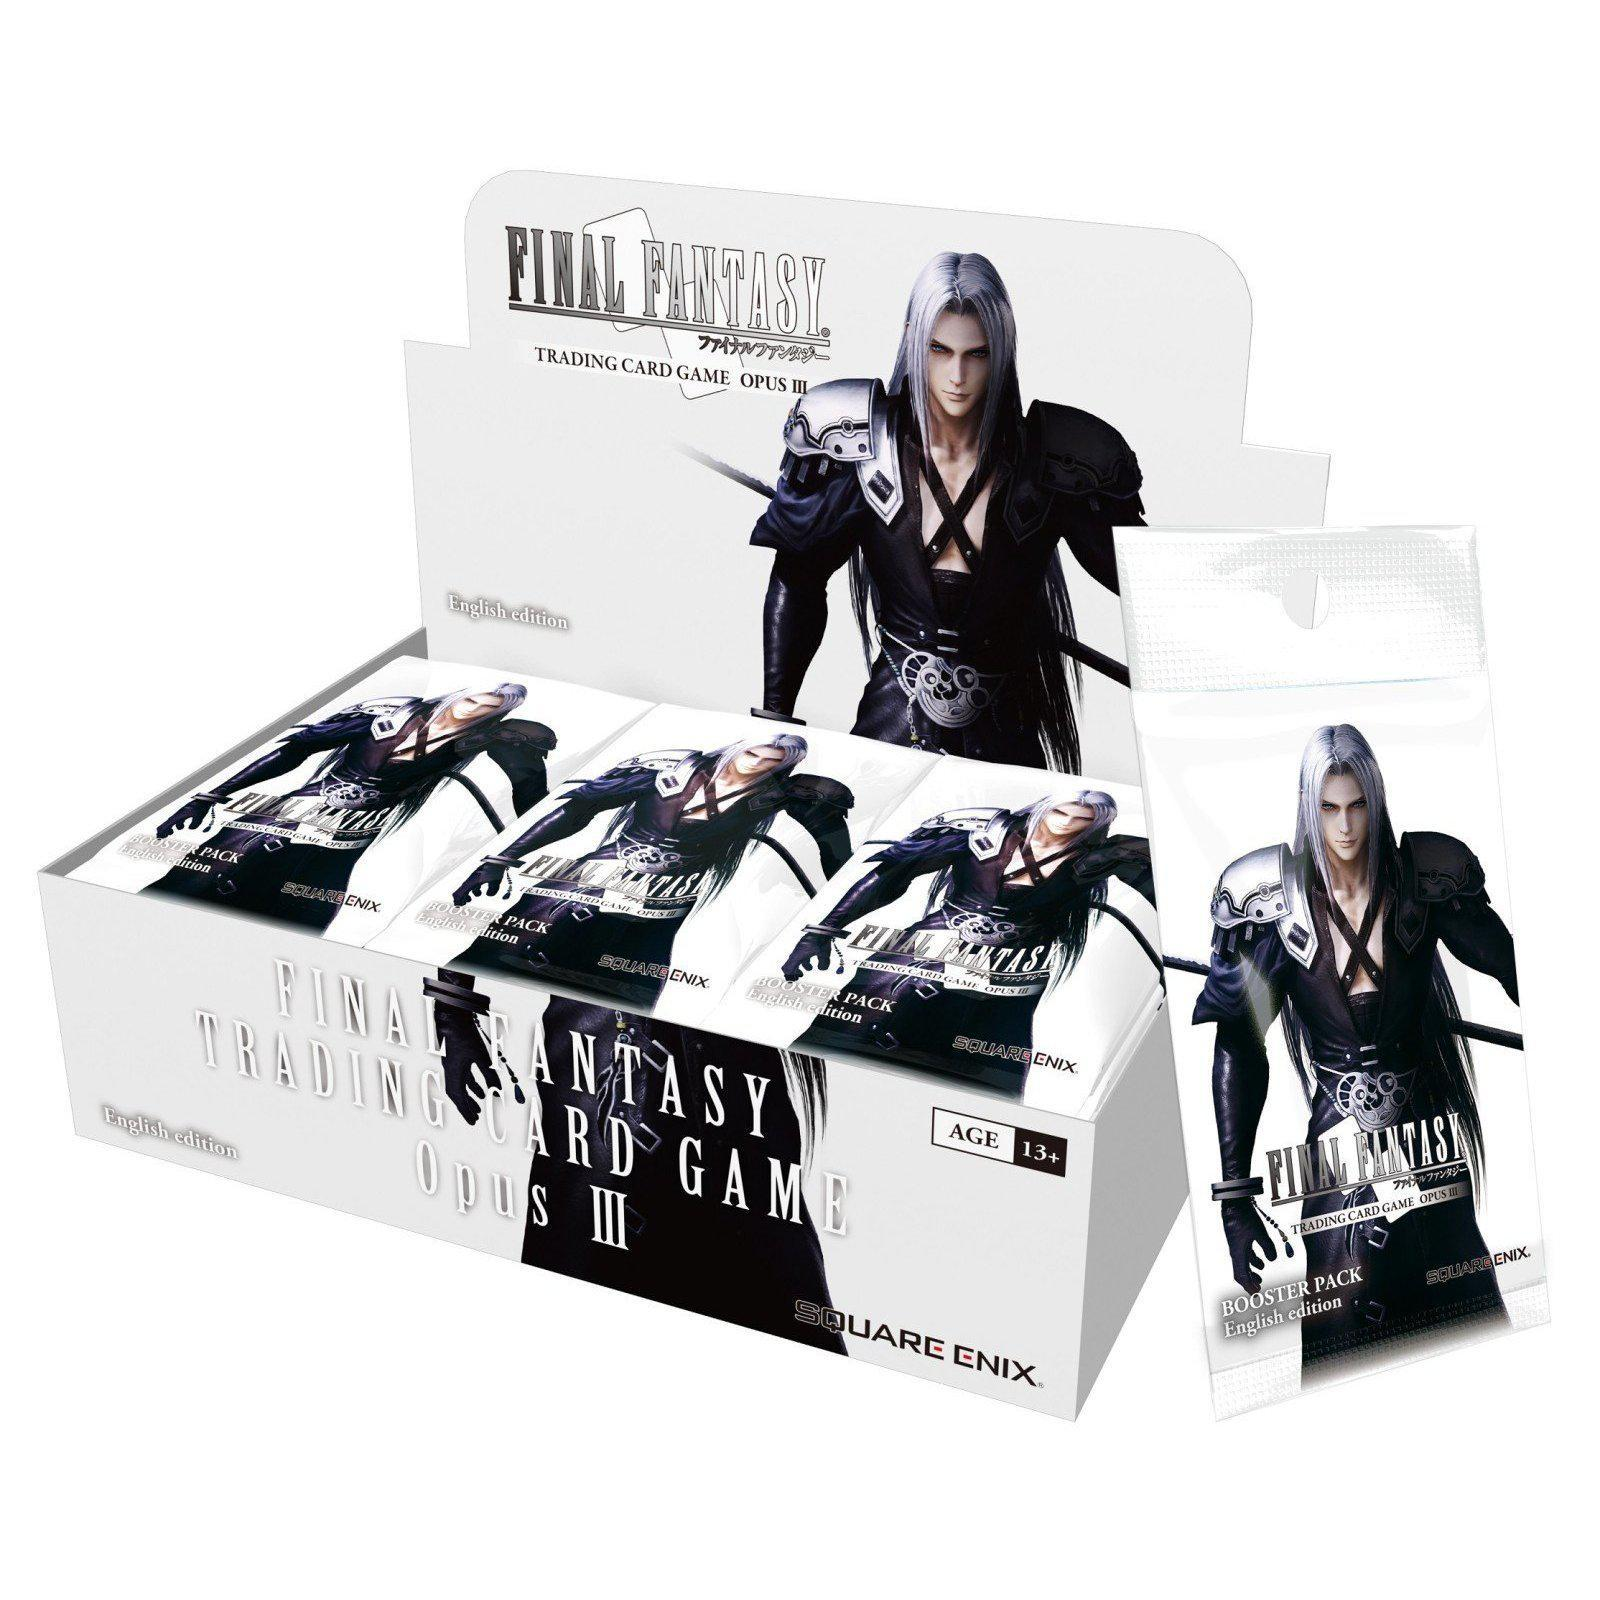 Final Fantasy Trading Card Game Opus III Booster Display - Cubox Australia